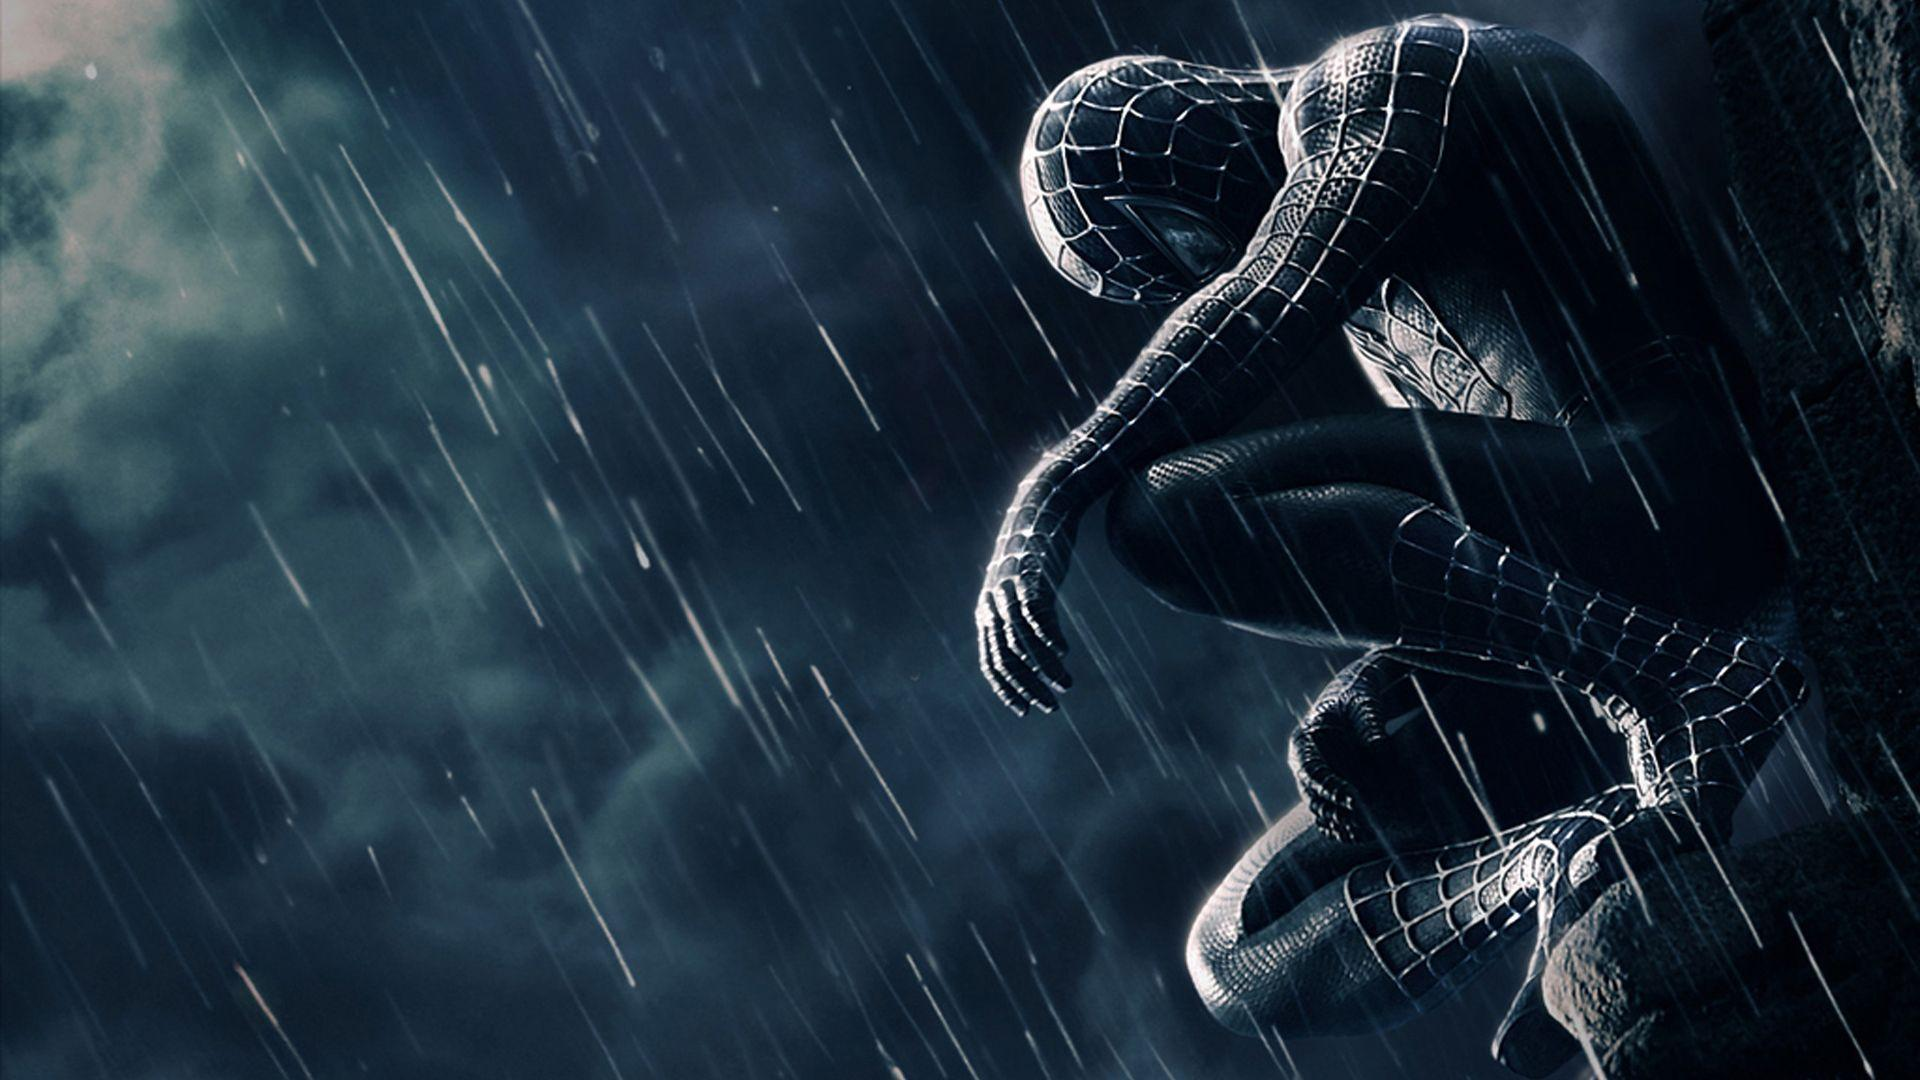 Spiderman HD Wallpaper | Spiderman Images Free | New Wallpapers